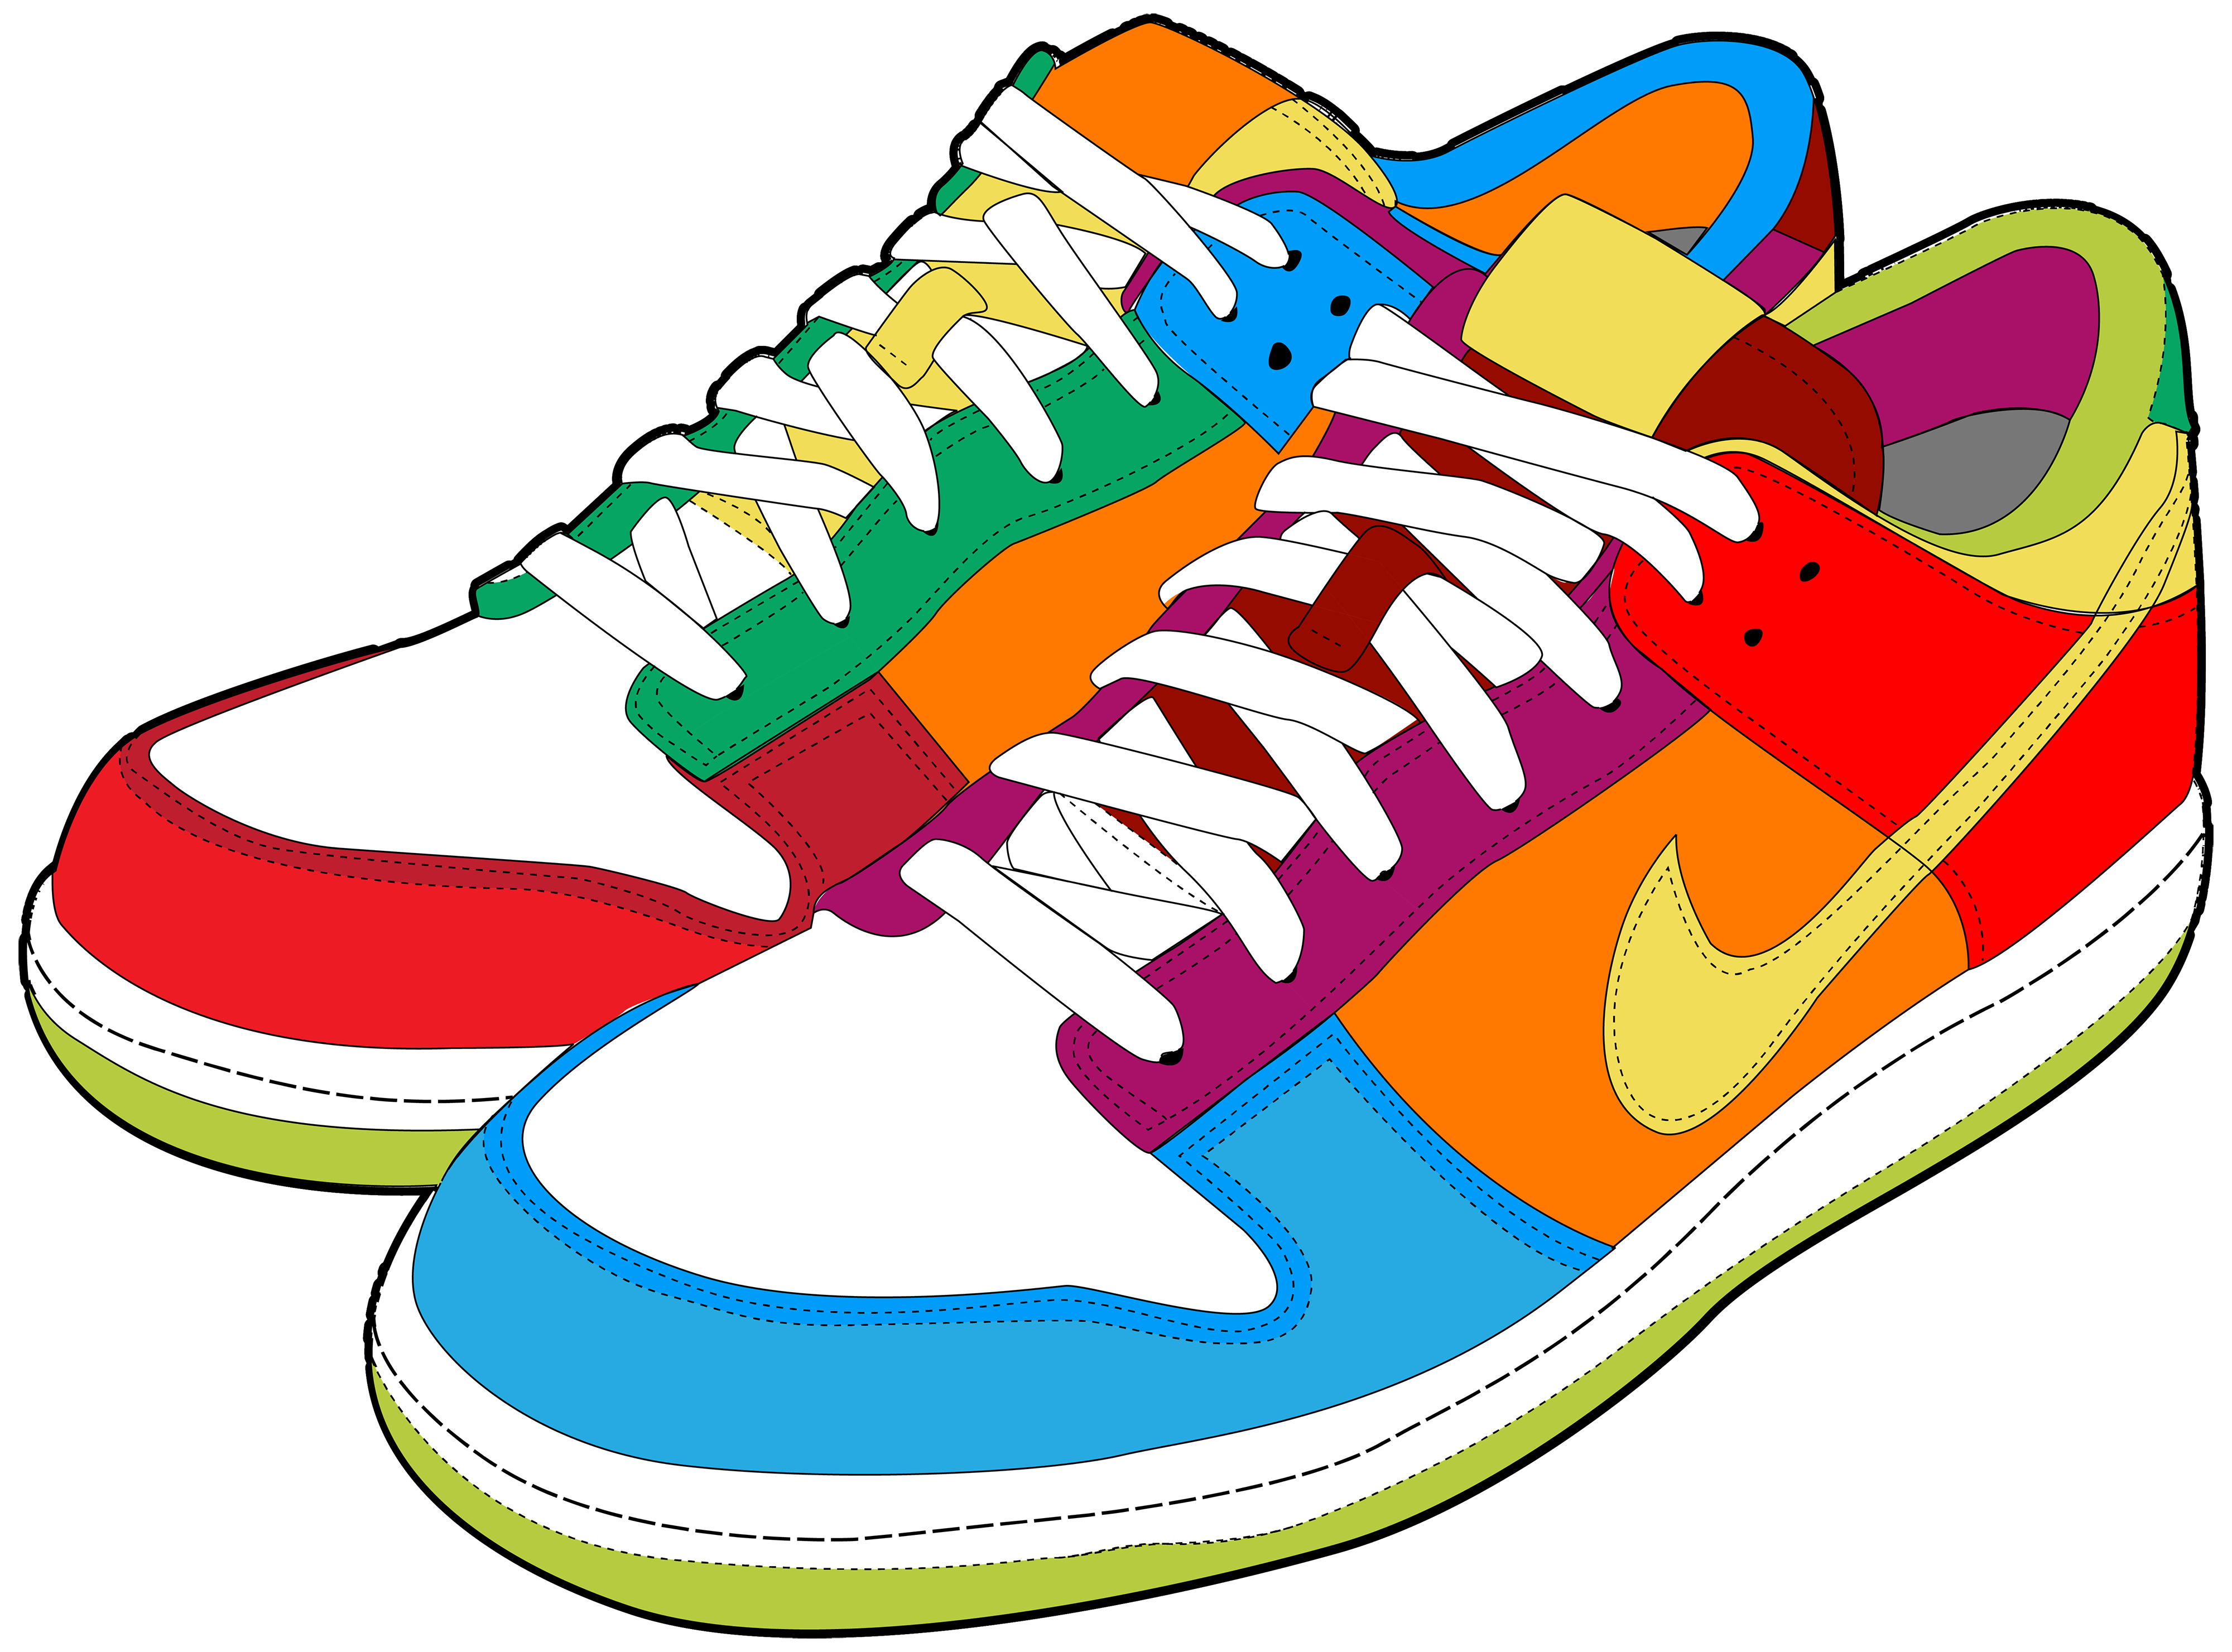 Sneaker Image PNG Image